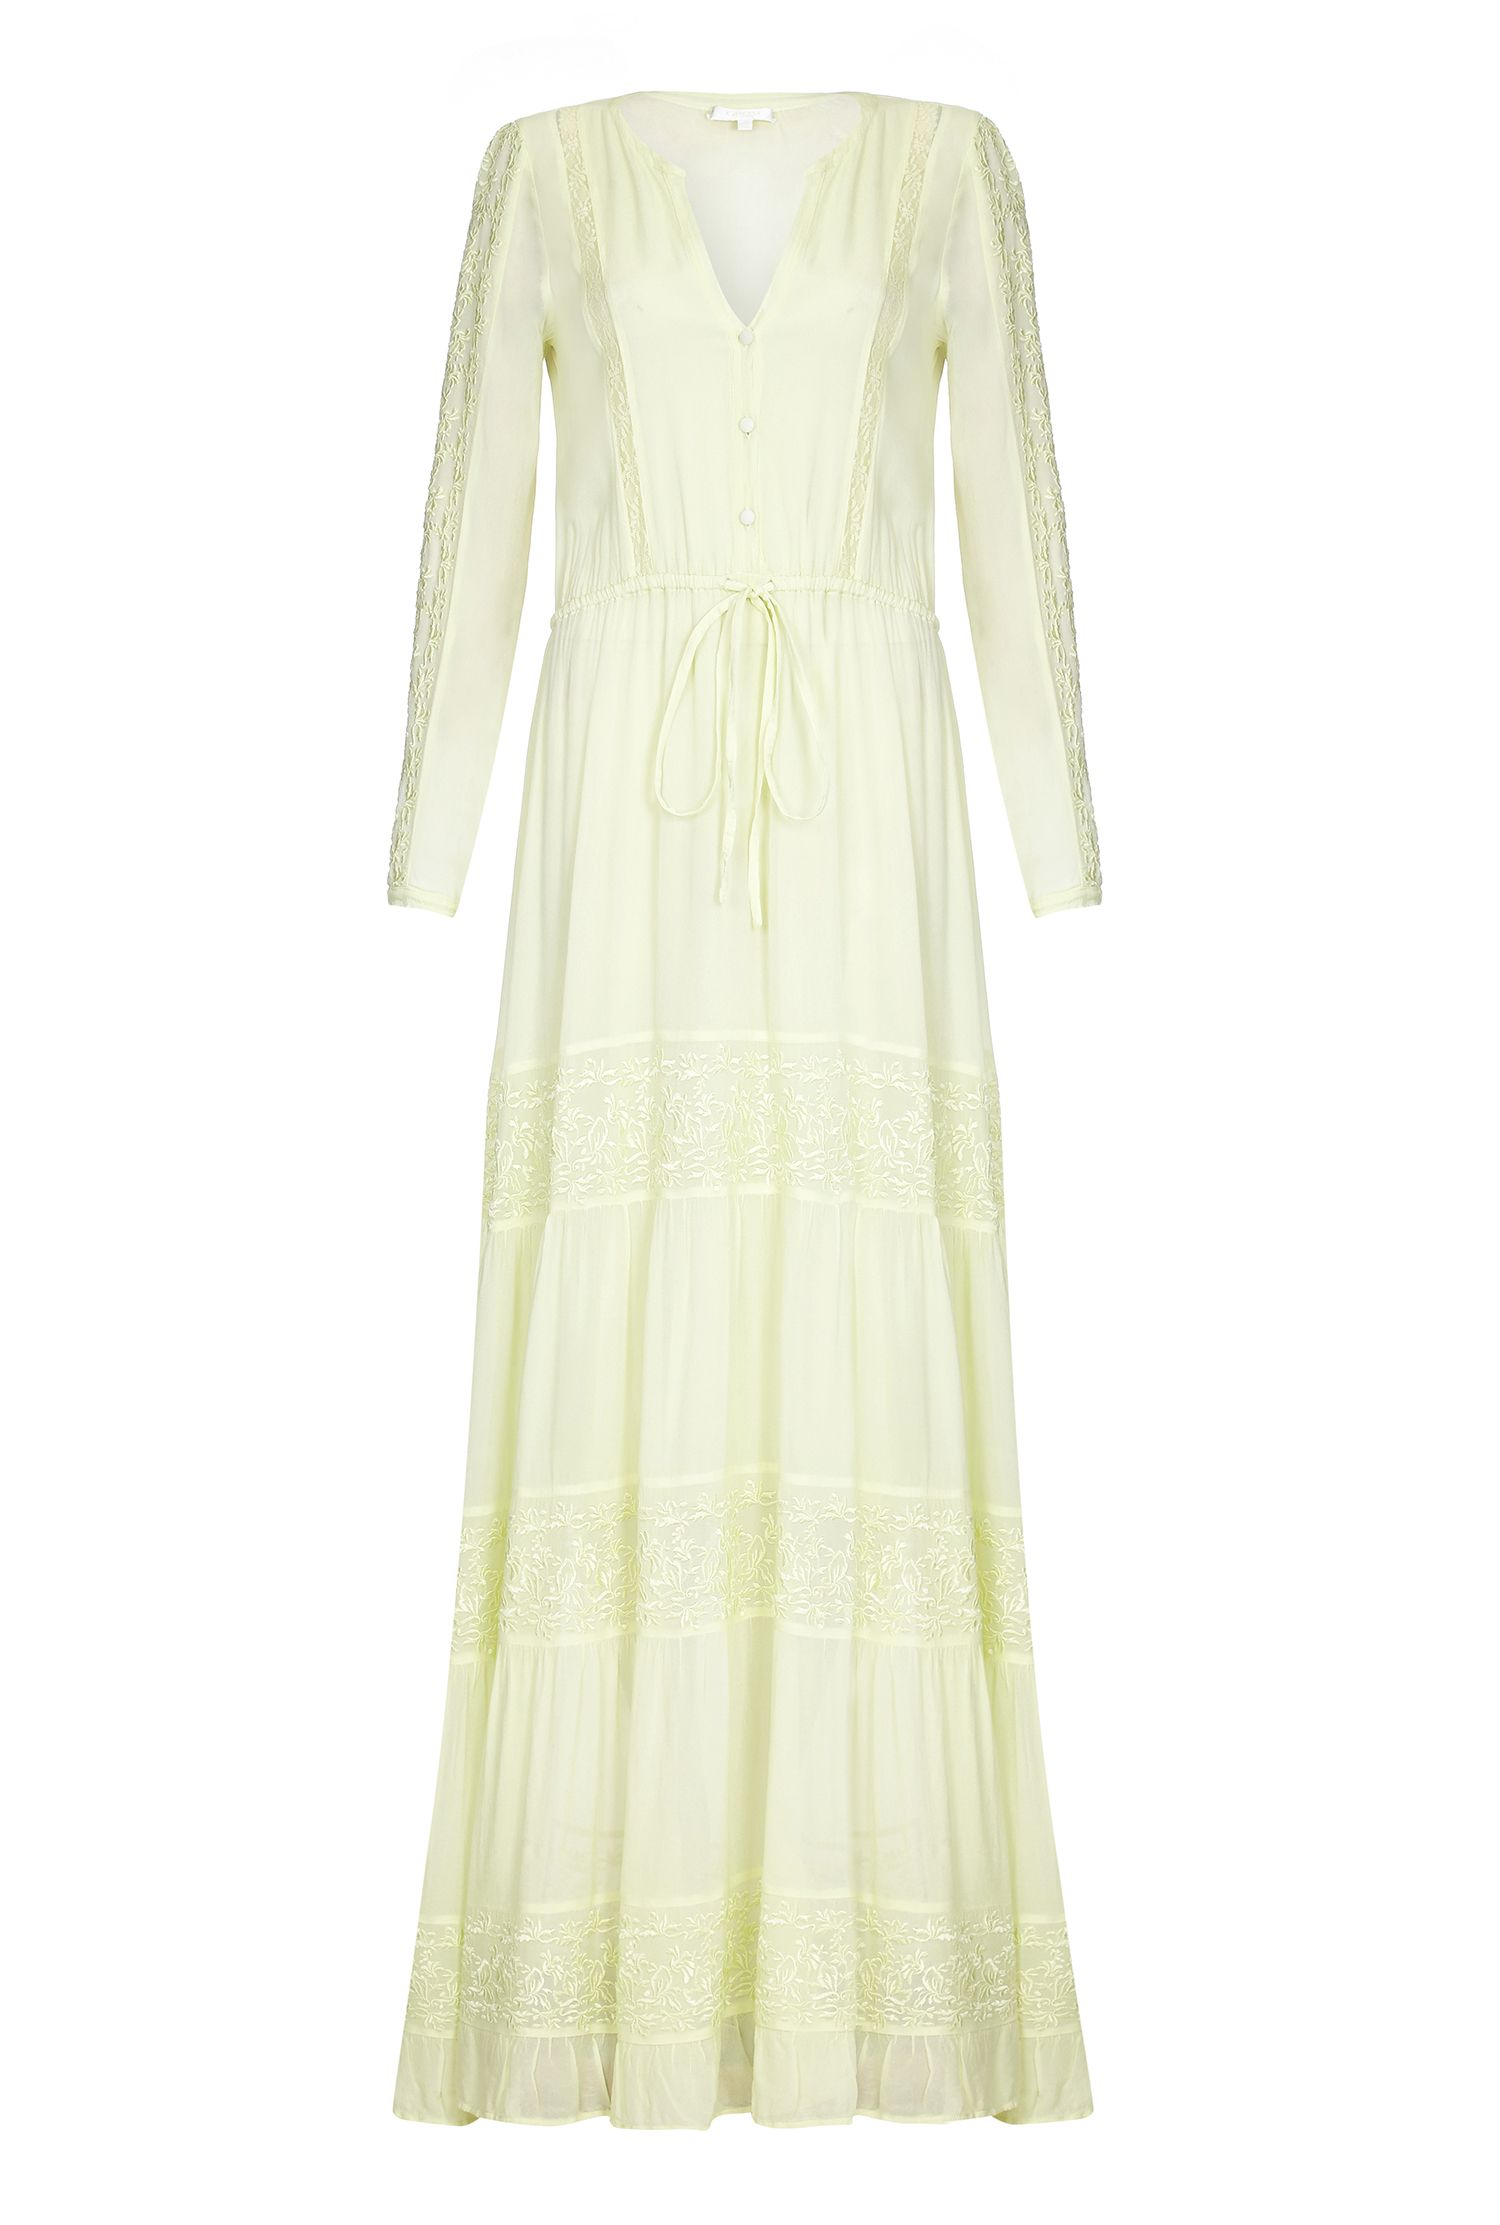 Victorian Costume Dresses & Skirts for Sale Ghost Eliza Dress Lemongrass £171.50 AT vintagedancer.com